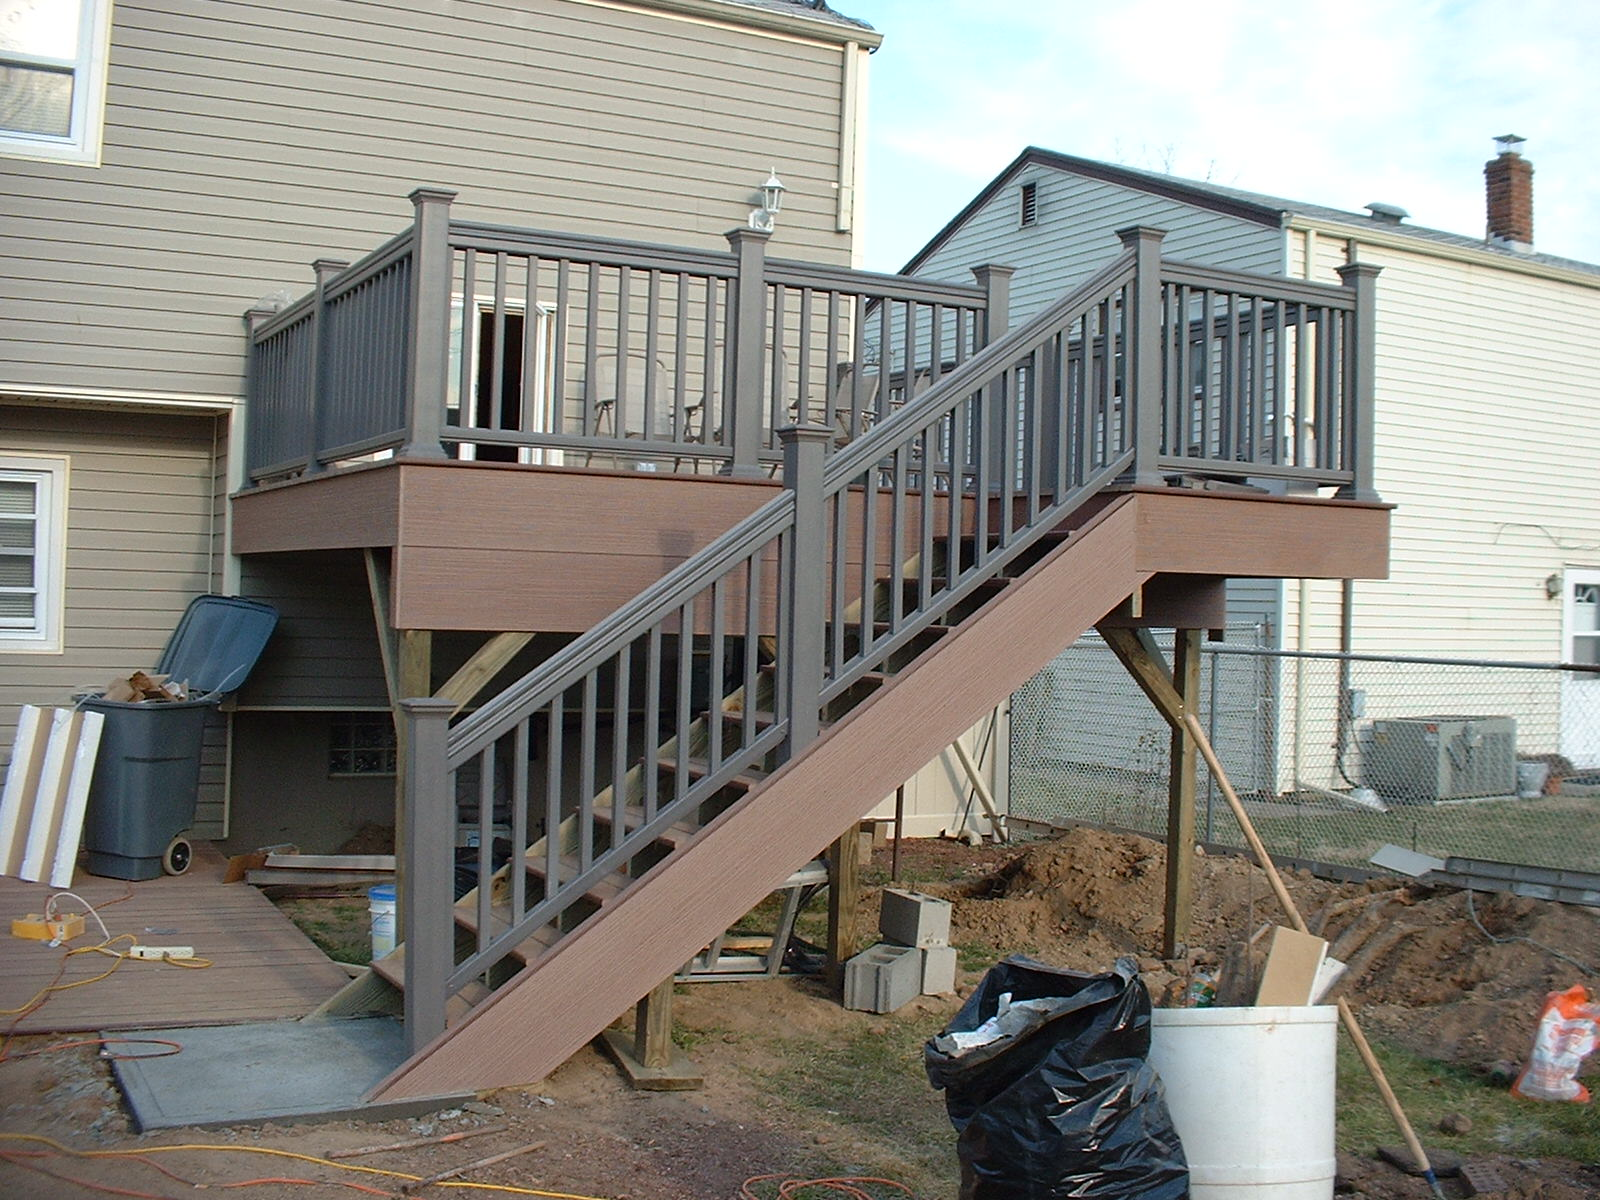 Both decks are now finished and a concrete pad is poured for the bottom of the stairs.